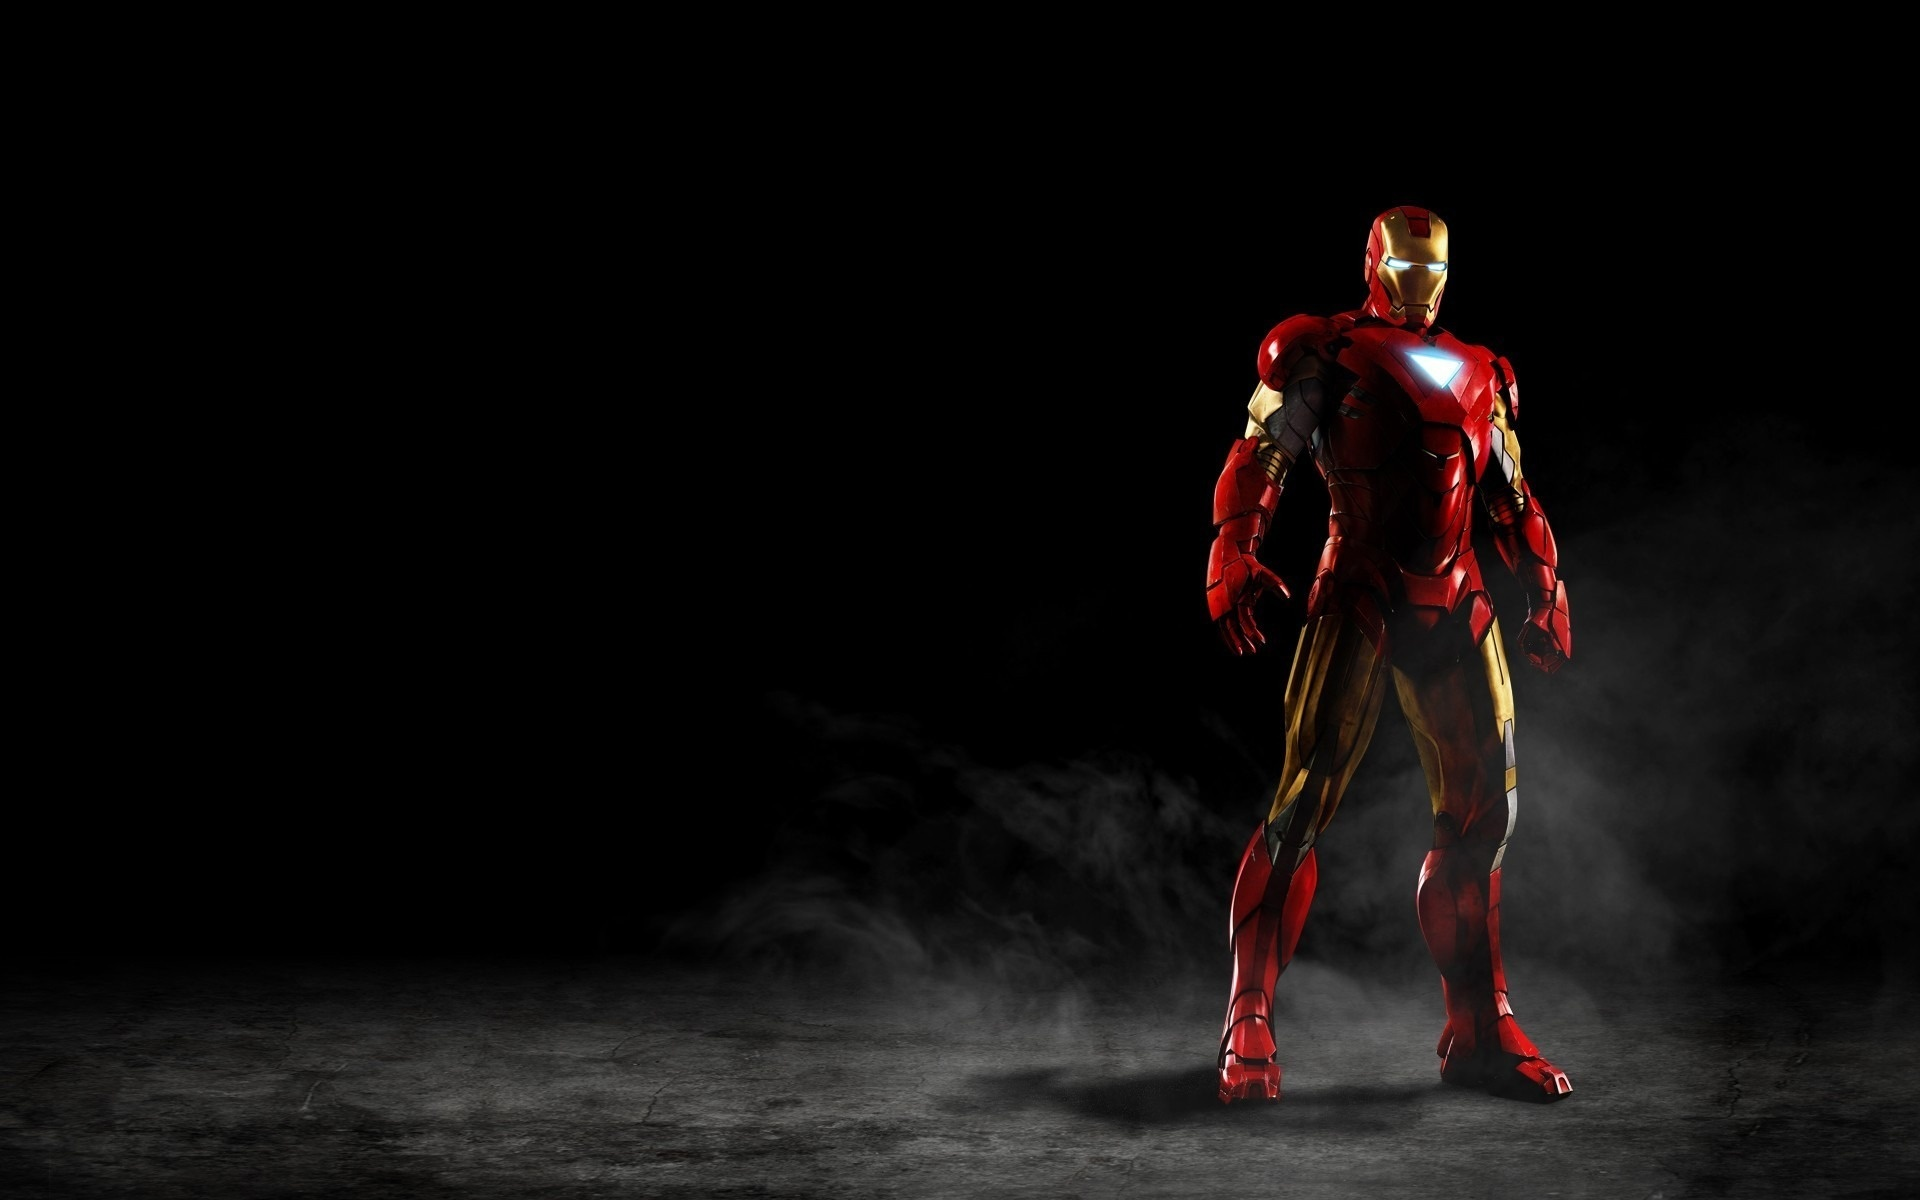 hd iron man wallpapers for iphone 5